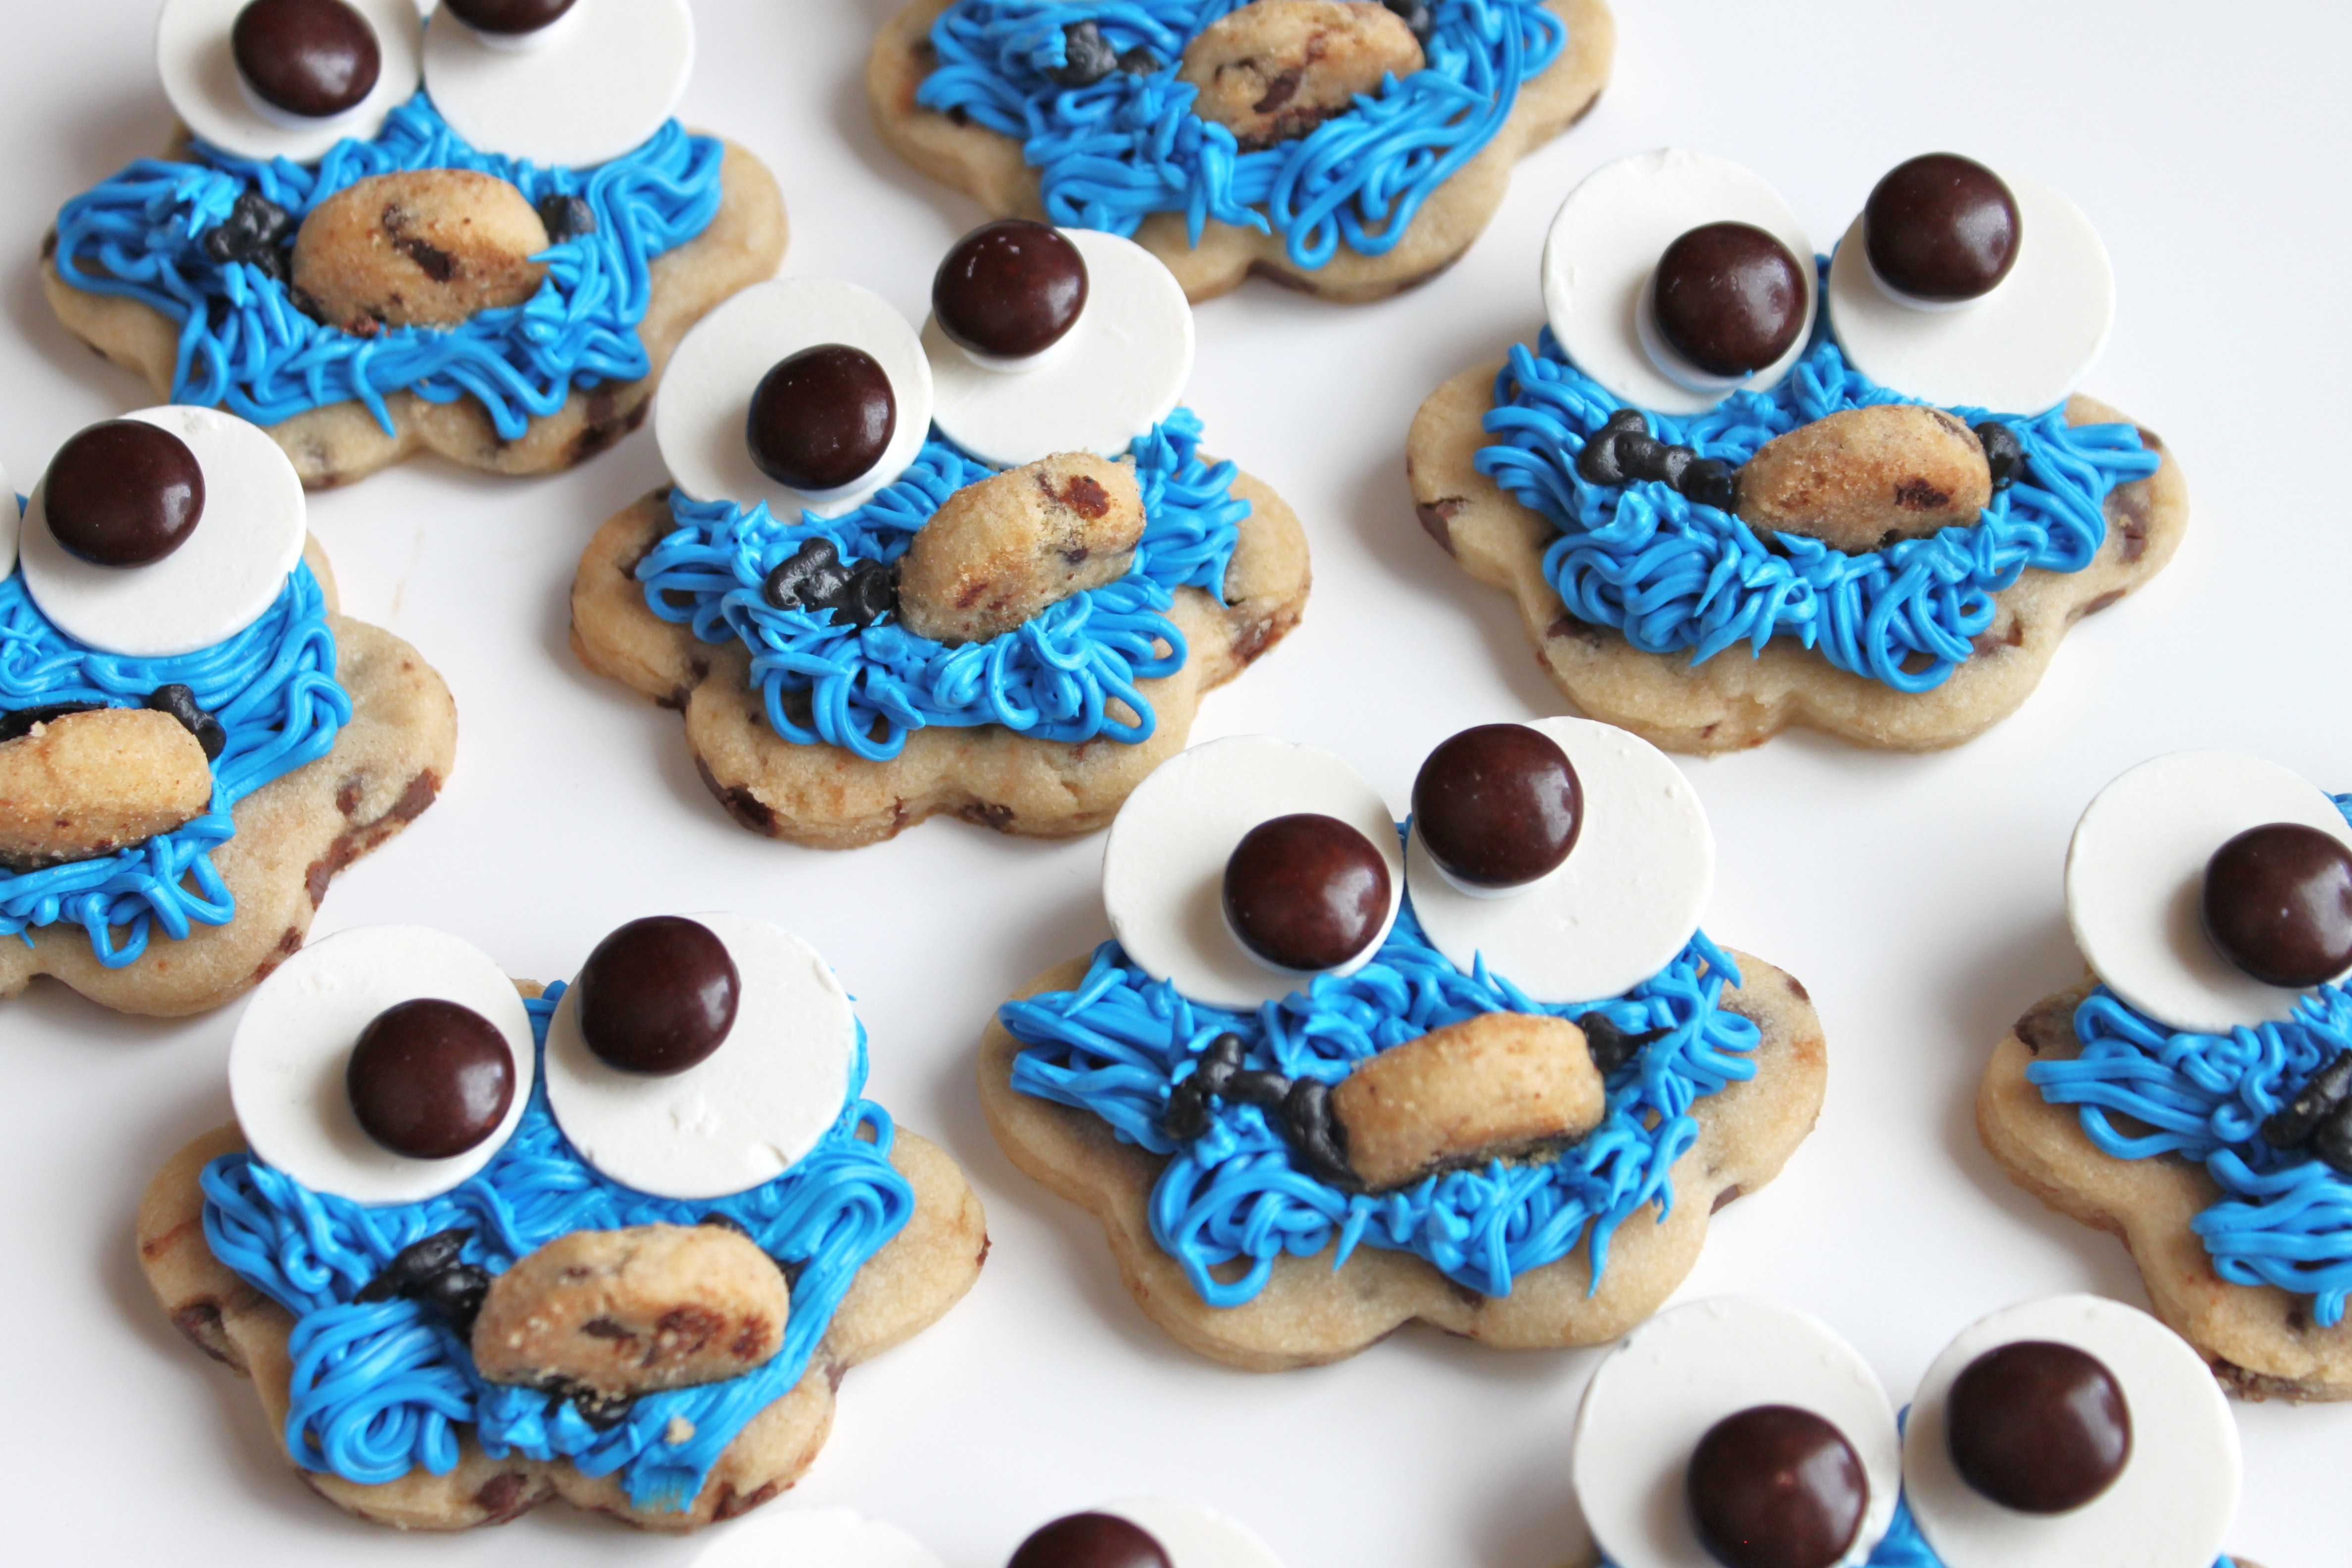 Cookies High Quality Wallpapers